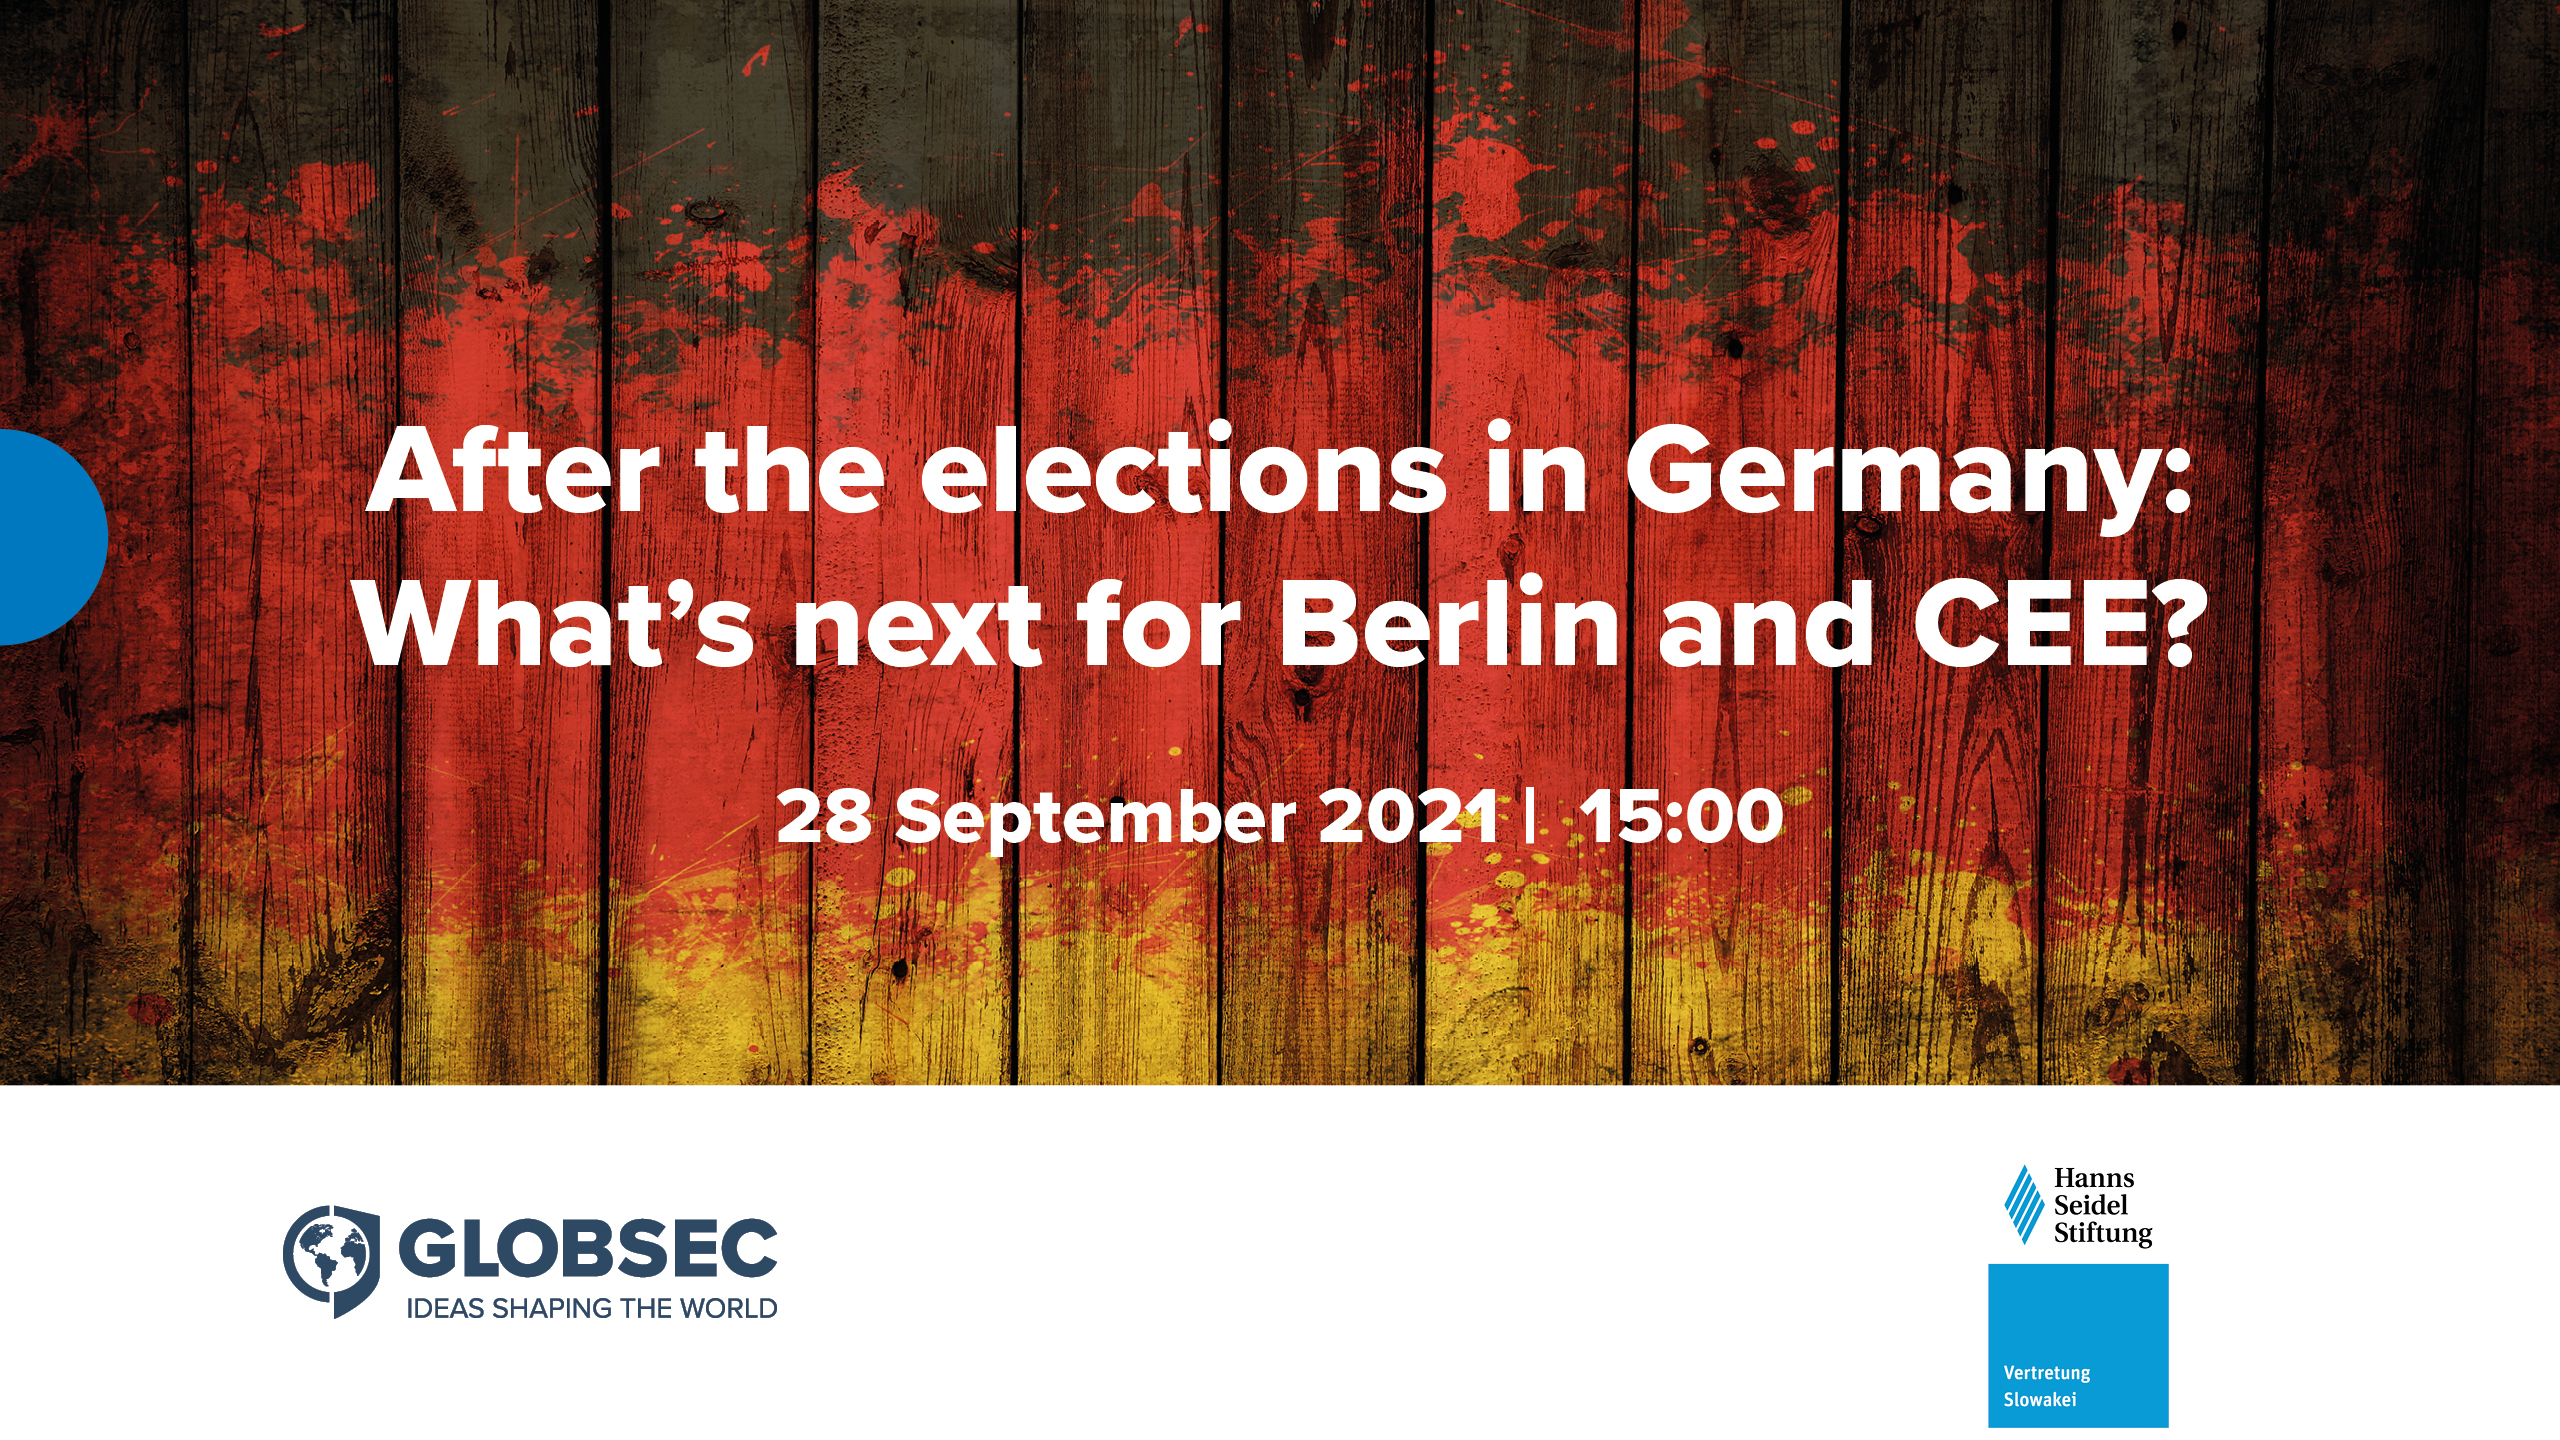 After the elections in Germany: What's next for Berlin and CEE?